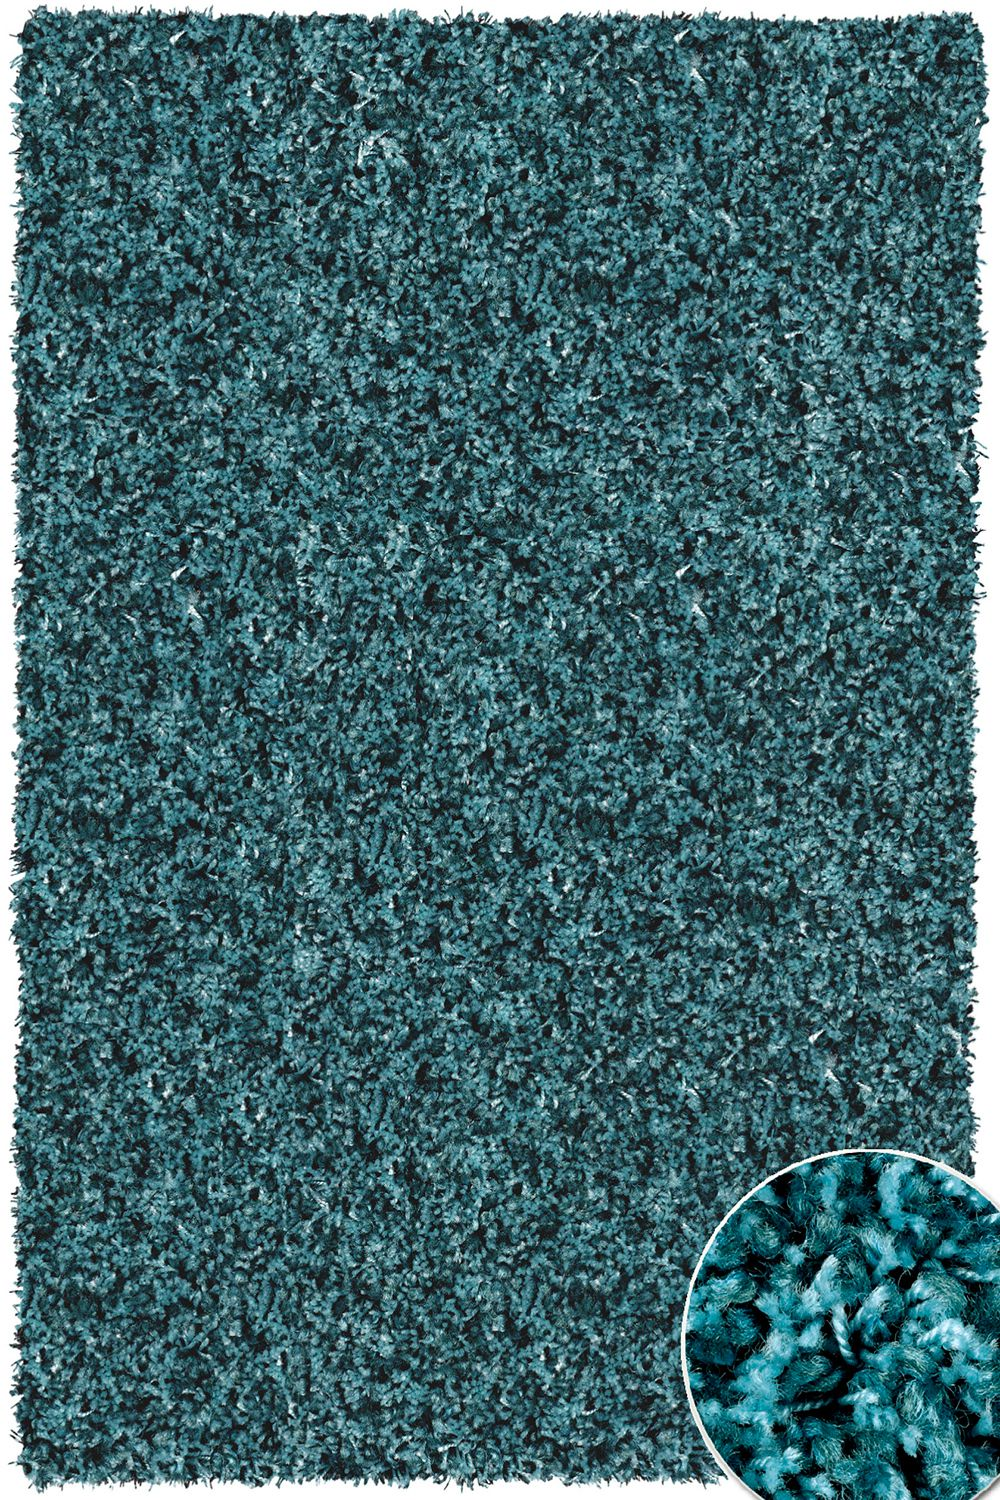 hochflor shaggy teppich twilight 5522 petrol blau raum quadrat fashion your room der. Black Bedroom Furniture Sets. Home Design Ideas